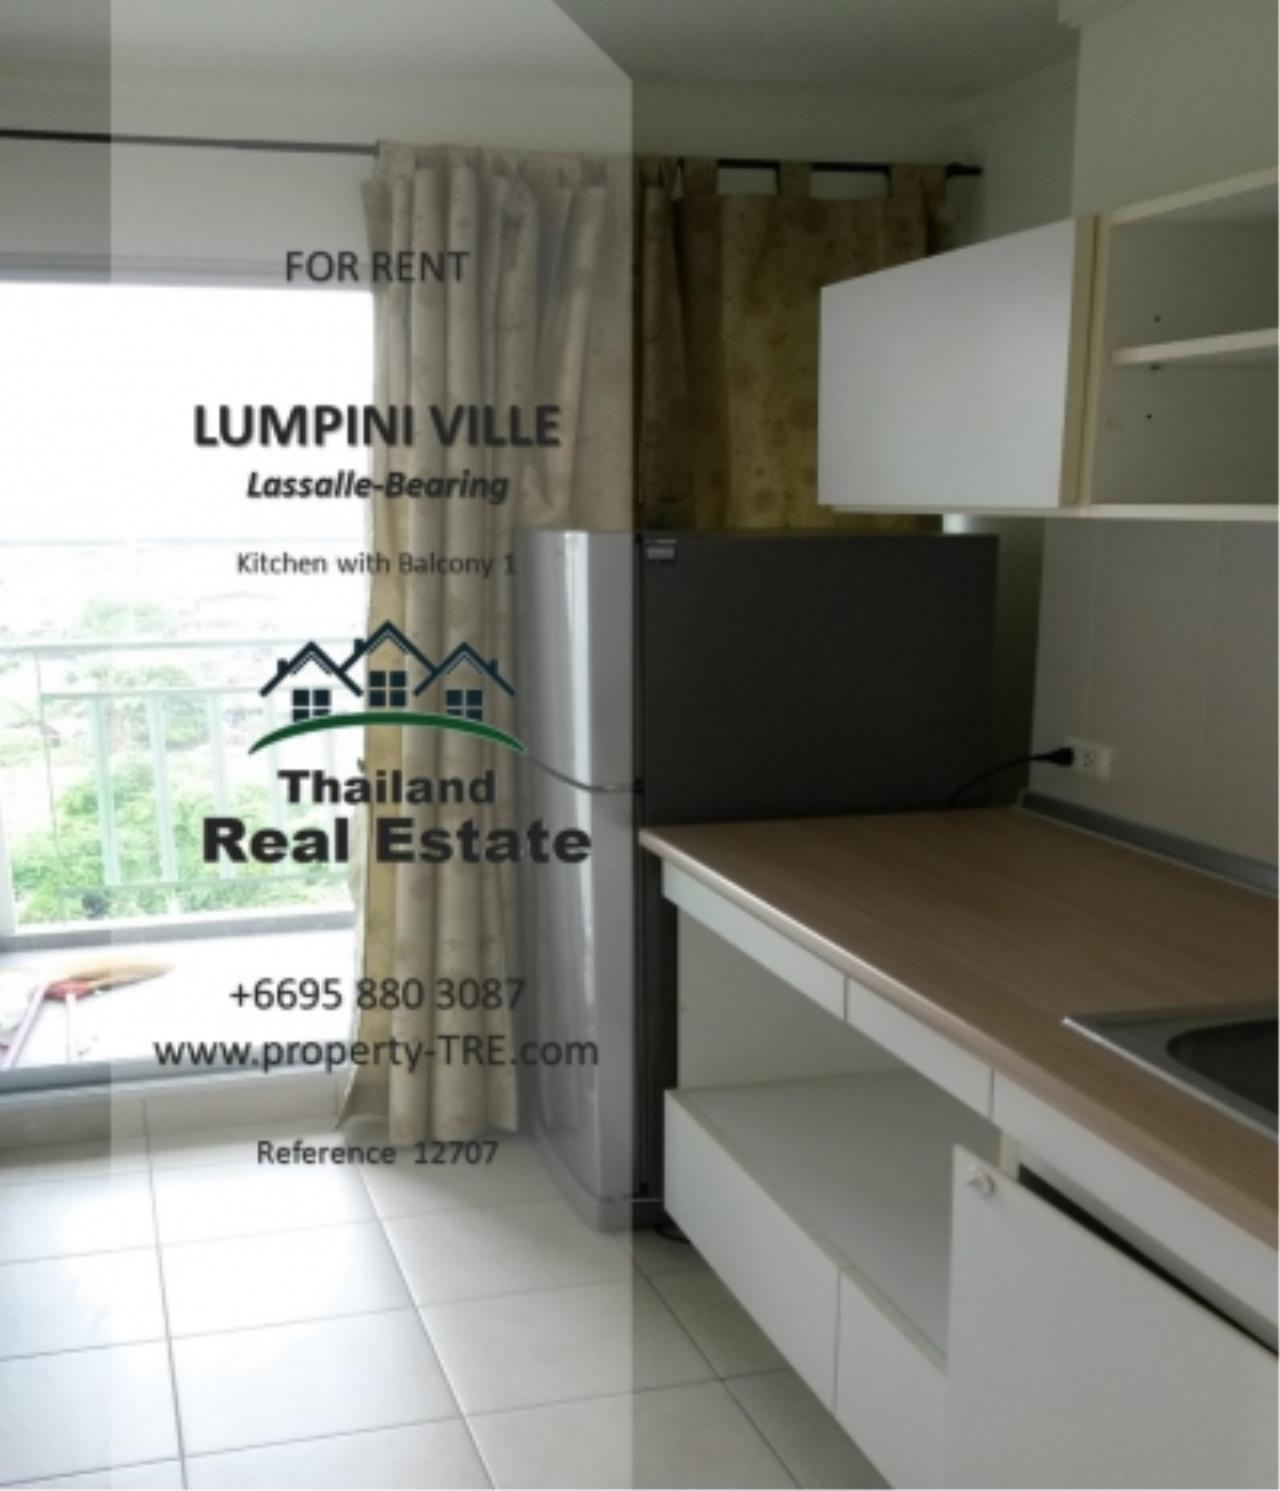 Thailand Real Estate Agency's 2 Bedroom Condo at Lumpini Ville  near Bkk Patana School(12707) 11